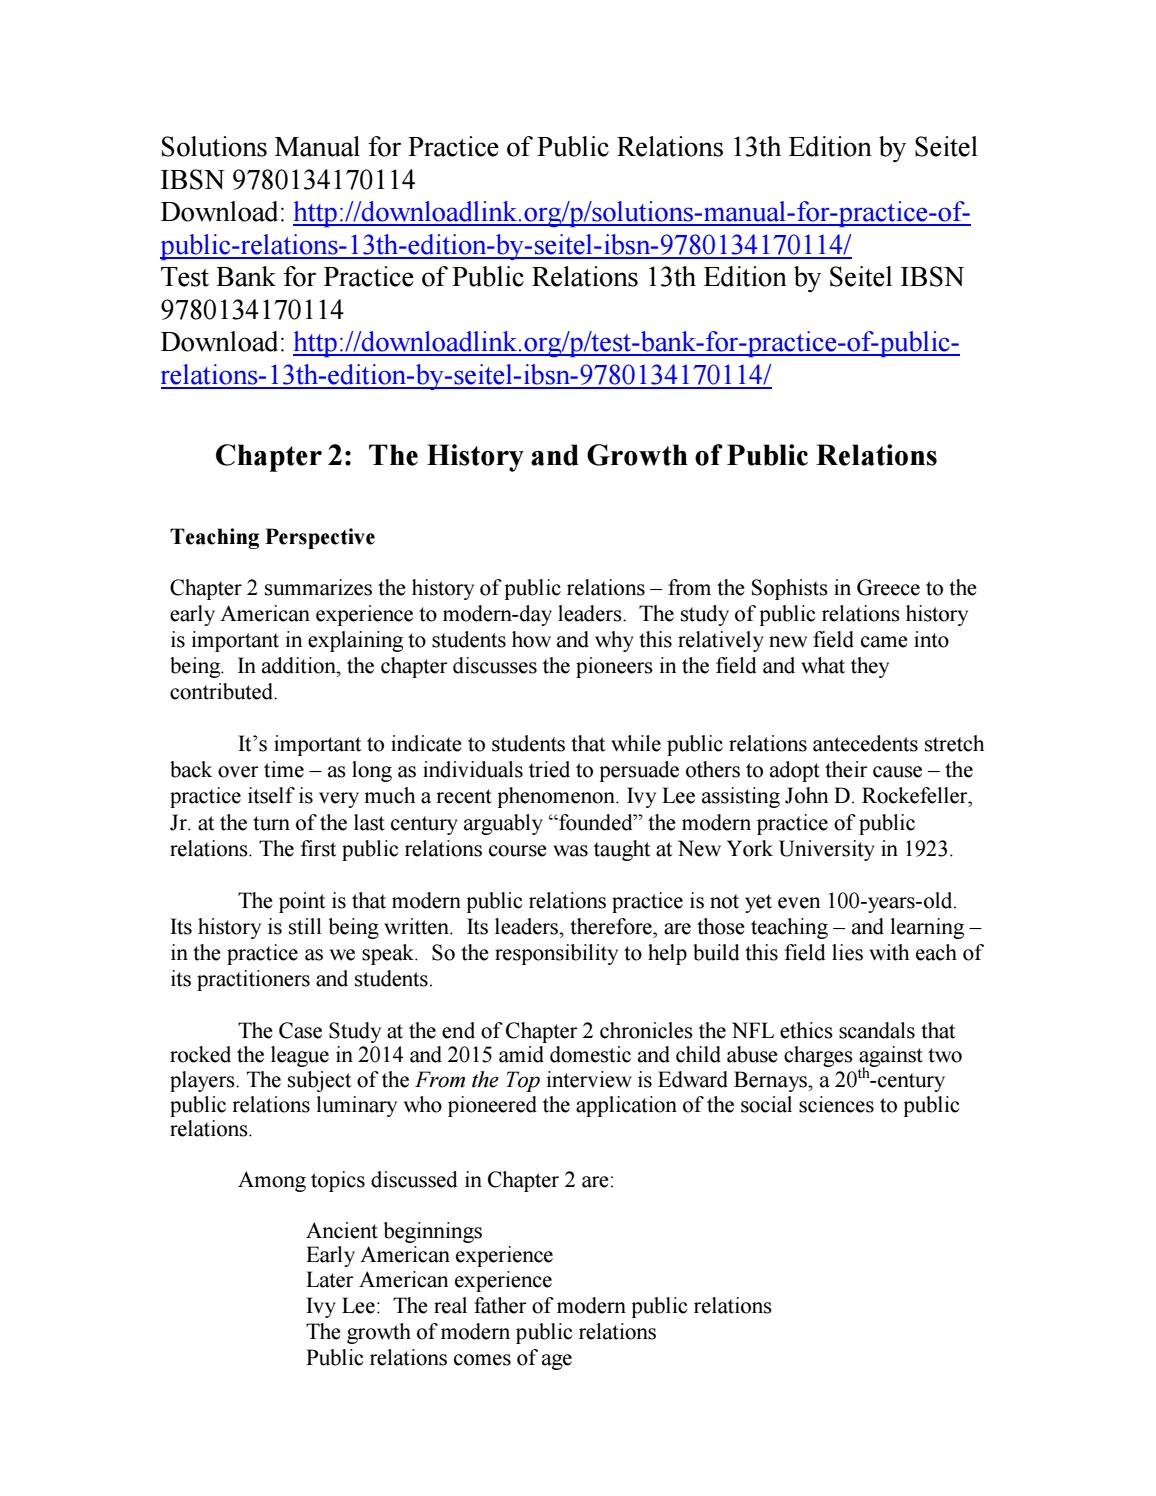 Solutions Manual for Practice of Public Relations 13th Edition by Seitel  IBSN 9780134170114 by ys074 - issuu